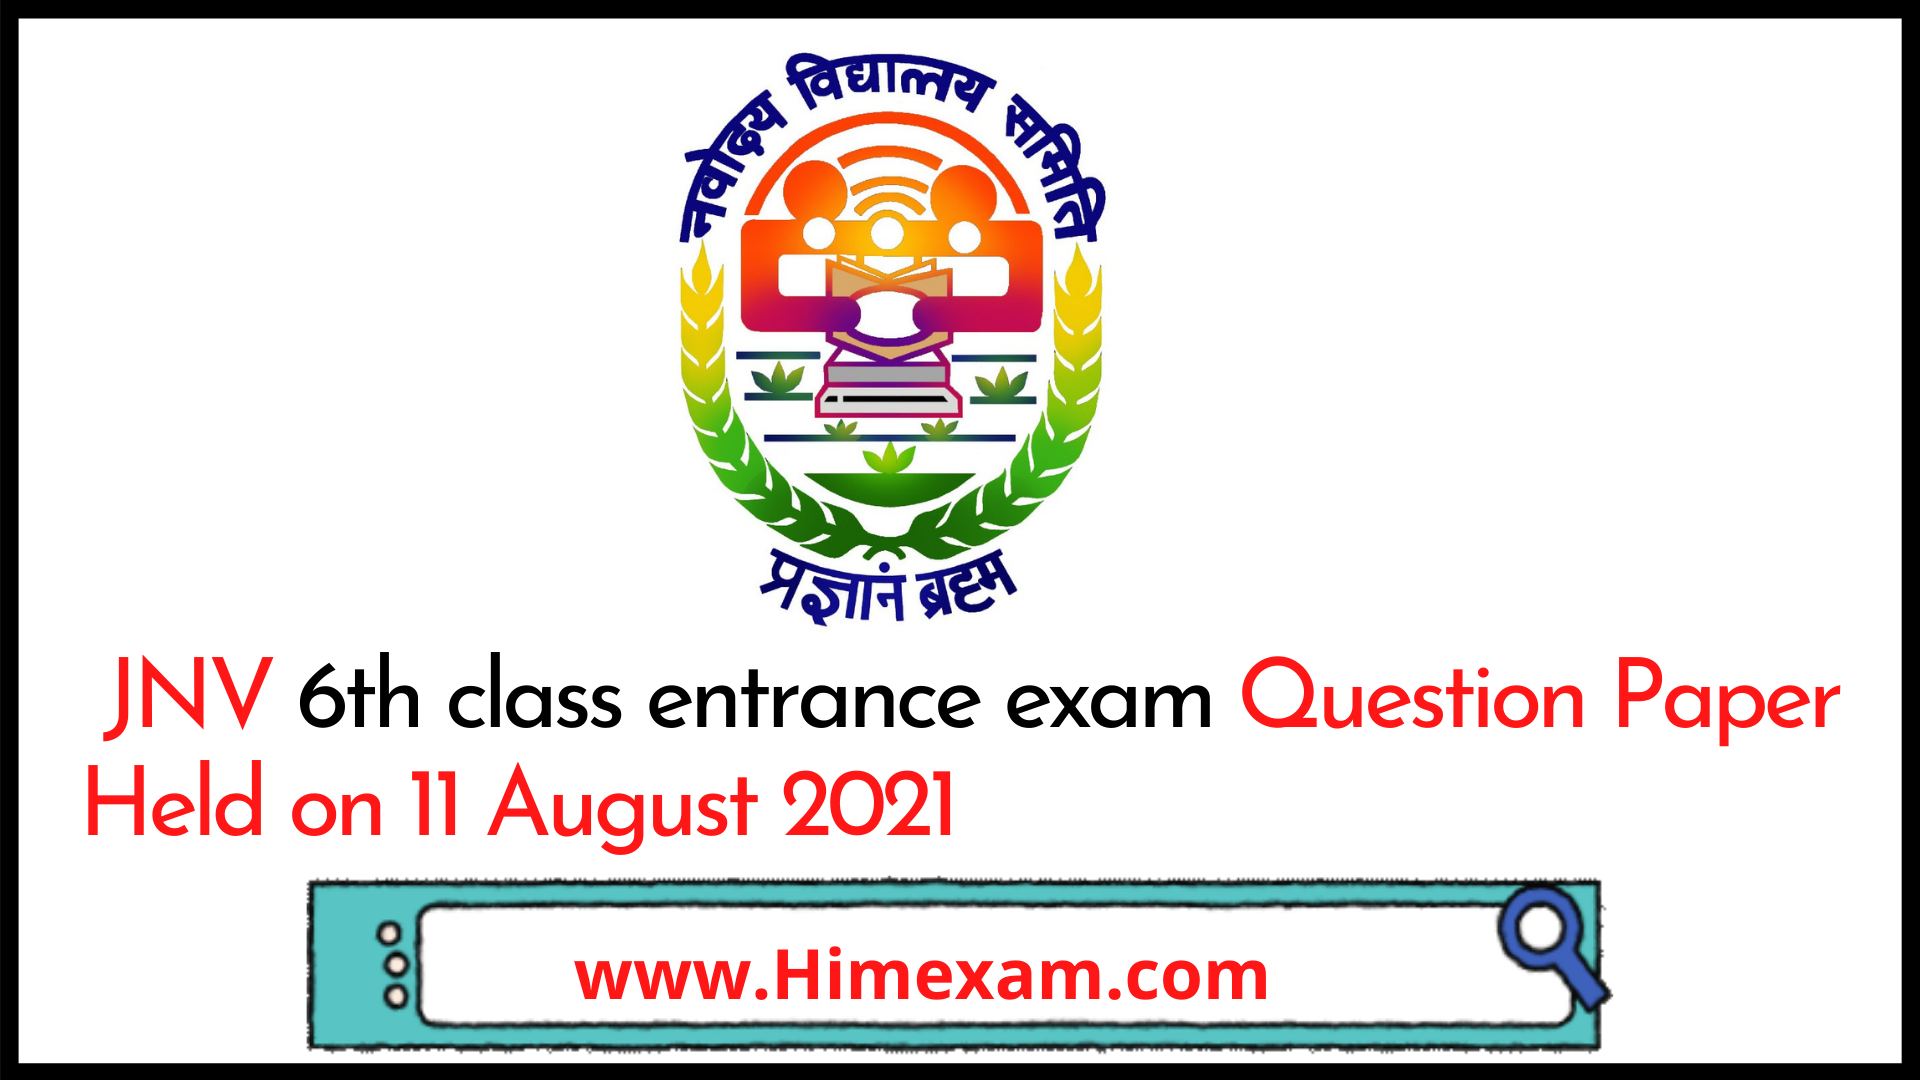 JNV 6th class entrance exam Question Paper Held on 11 August 2021